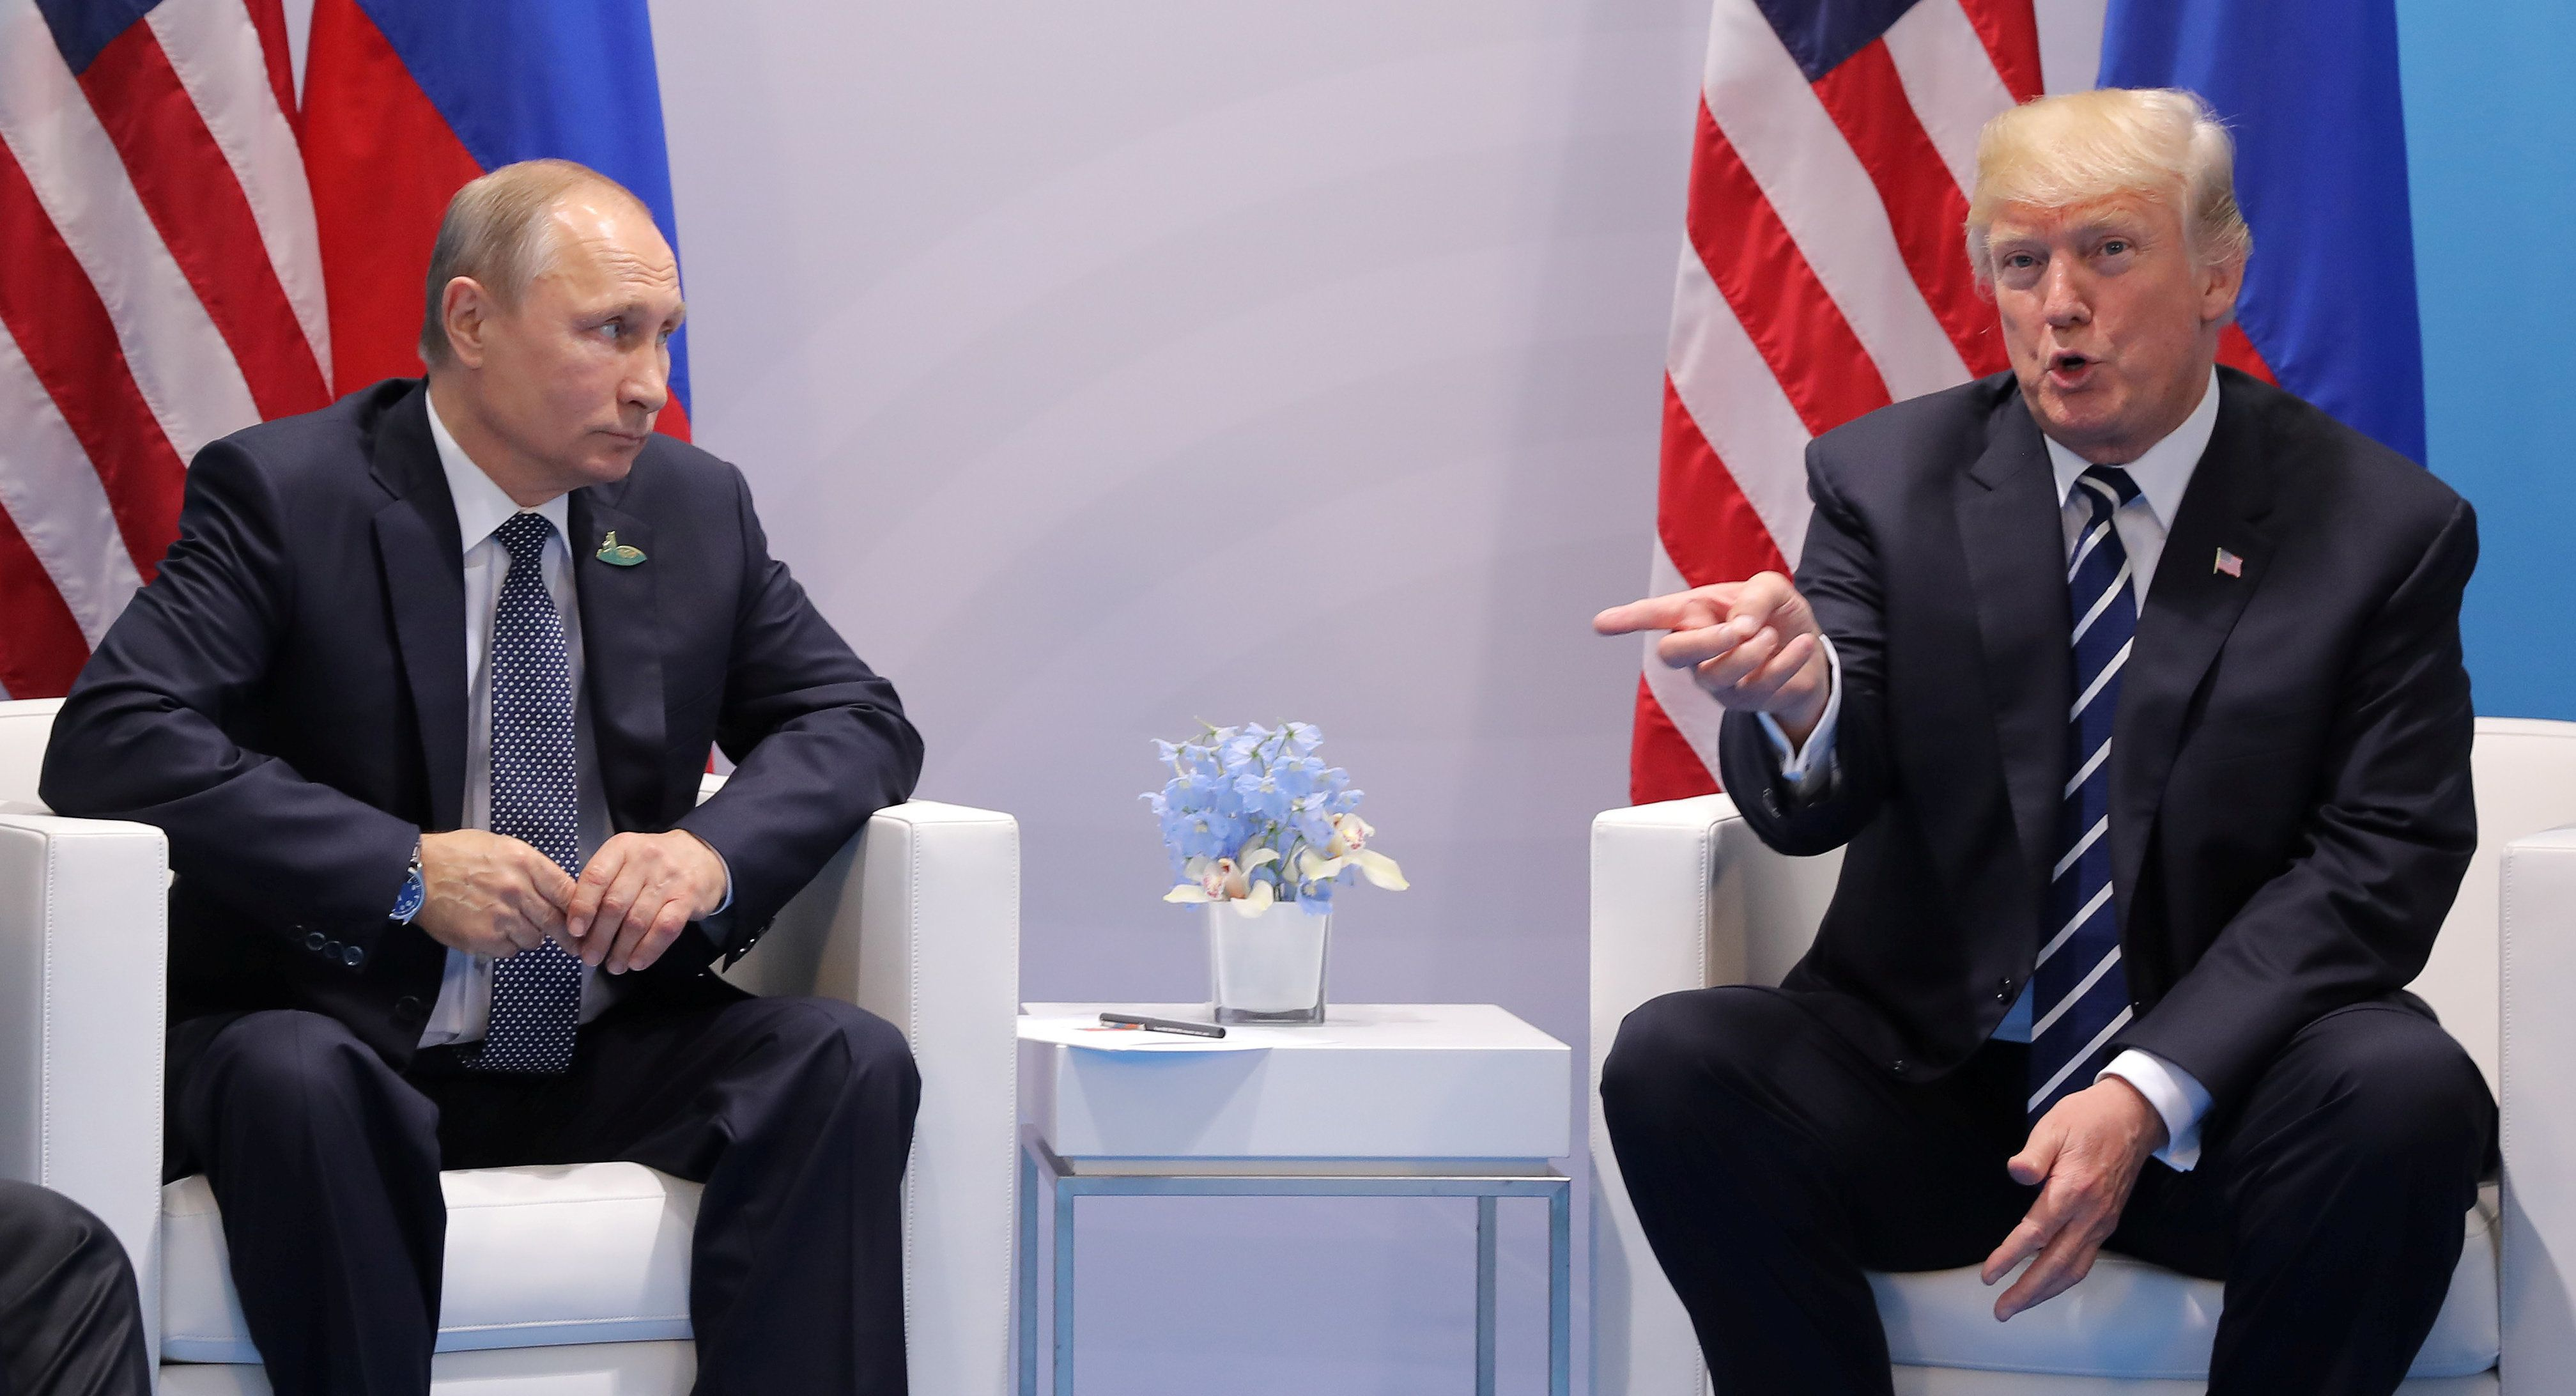 Trump Walks Back Russian Cybersecurity Pact 12 Hours After Proposing